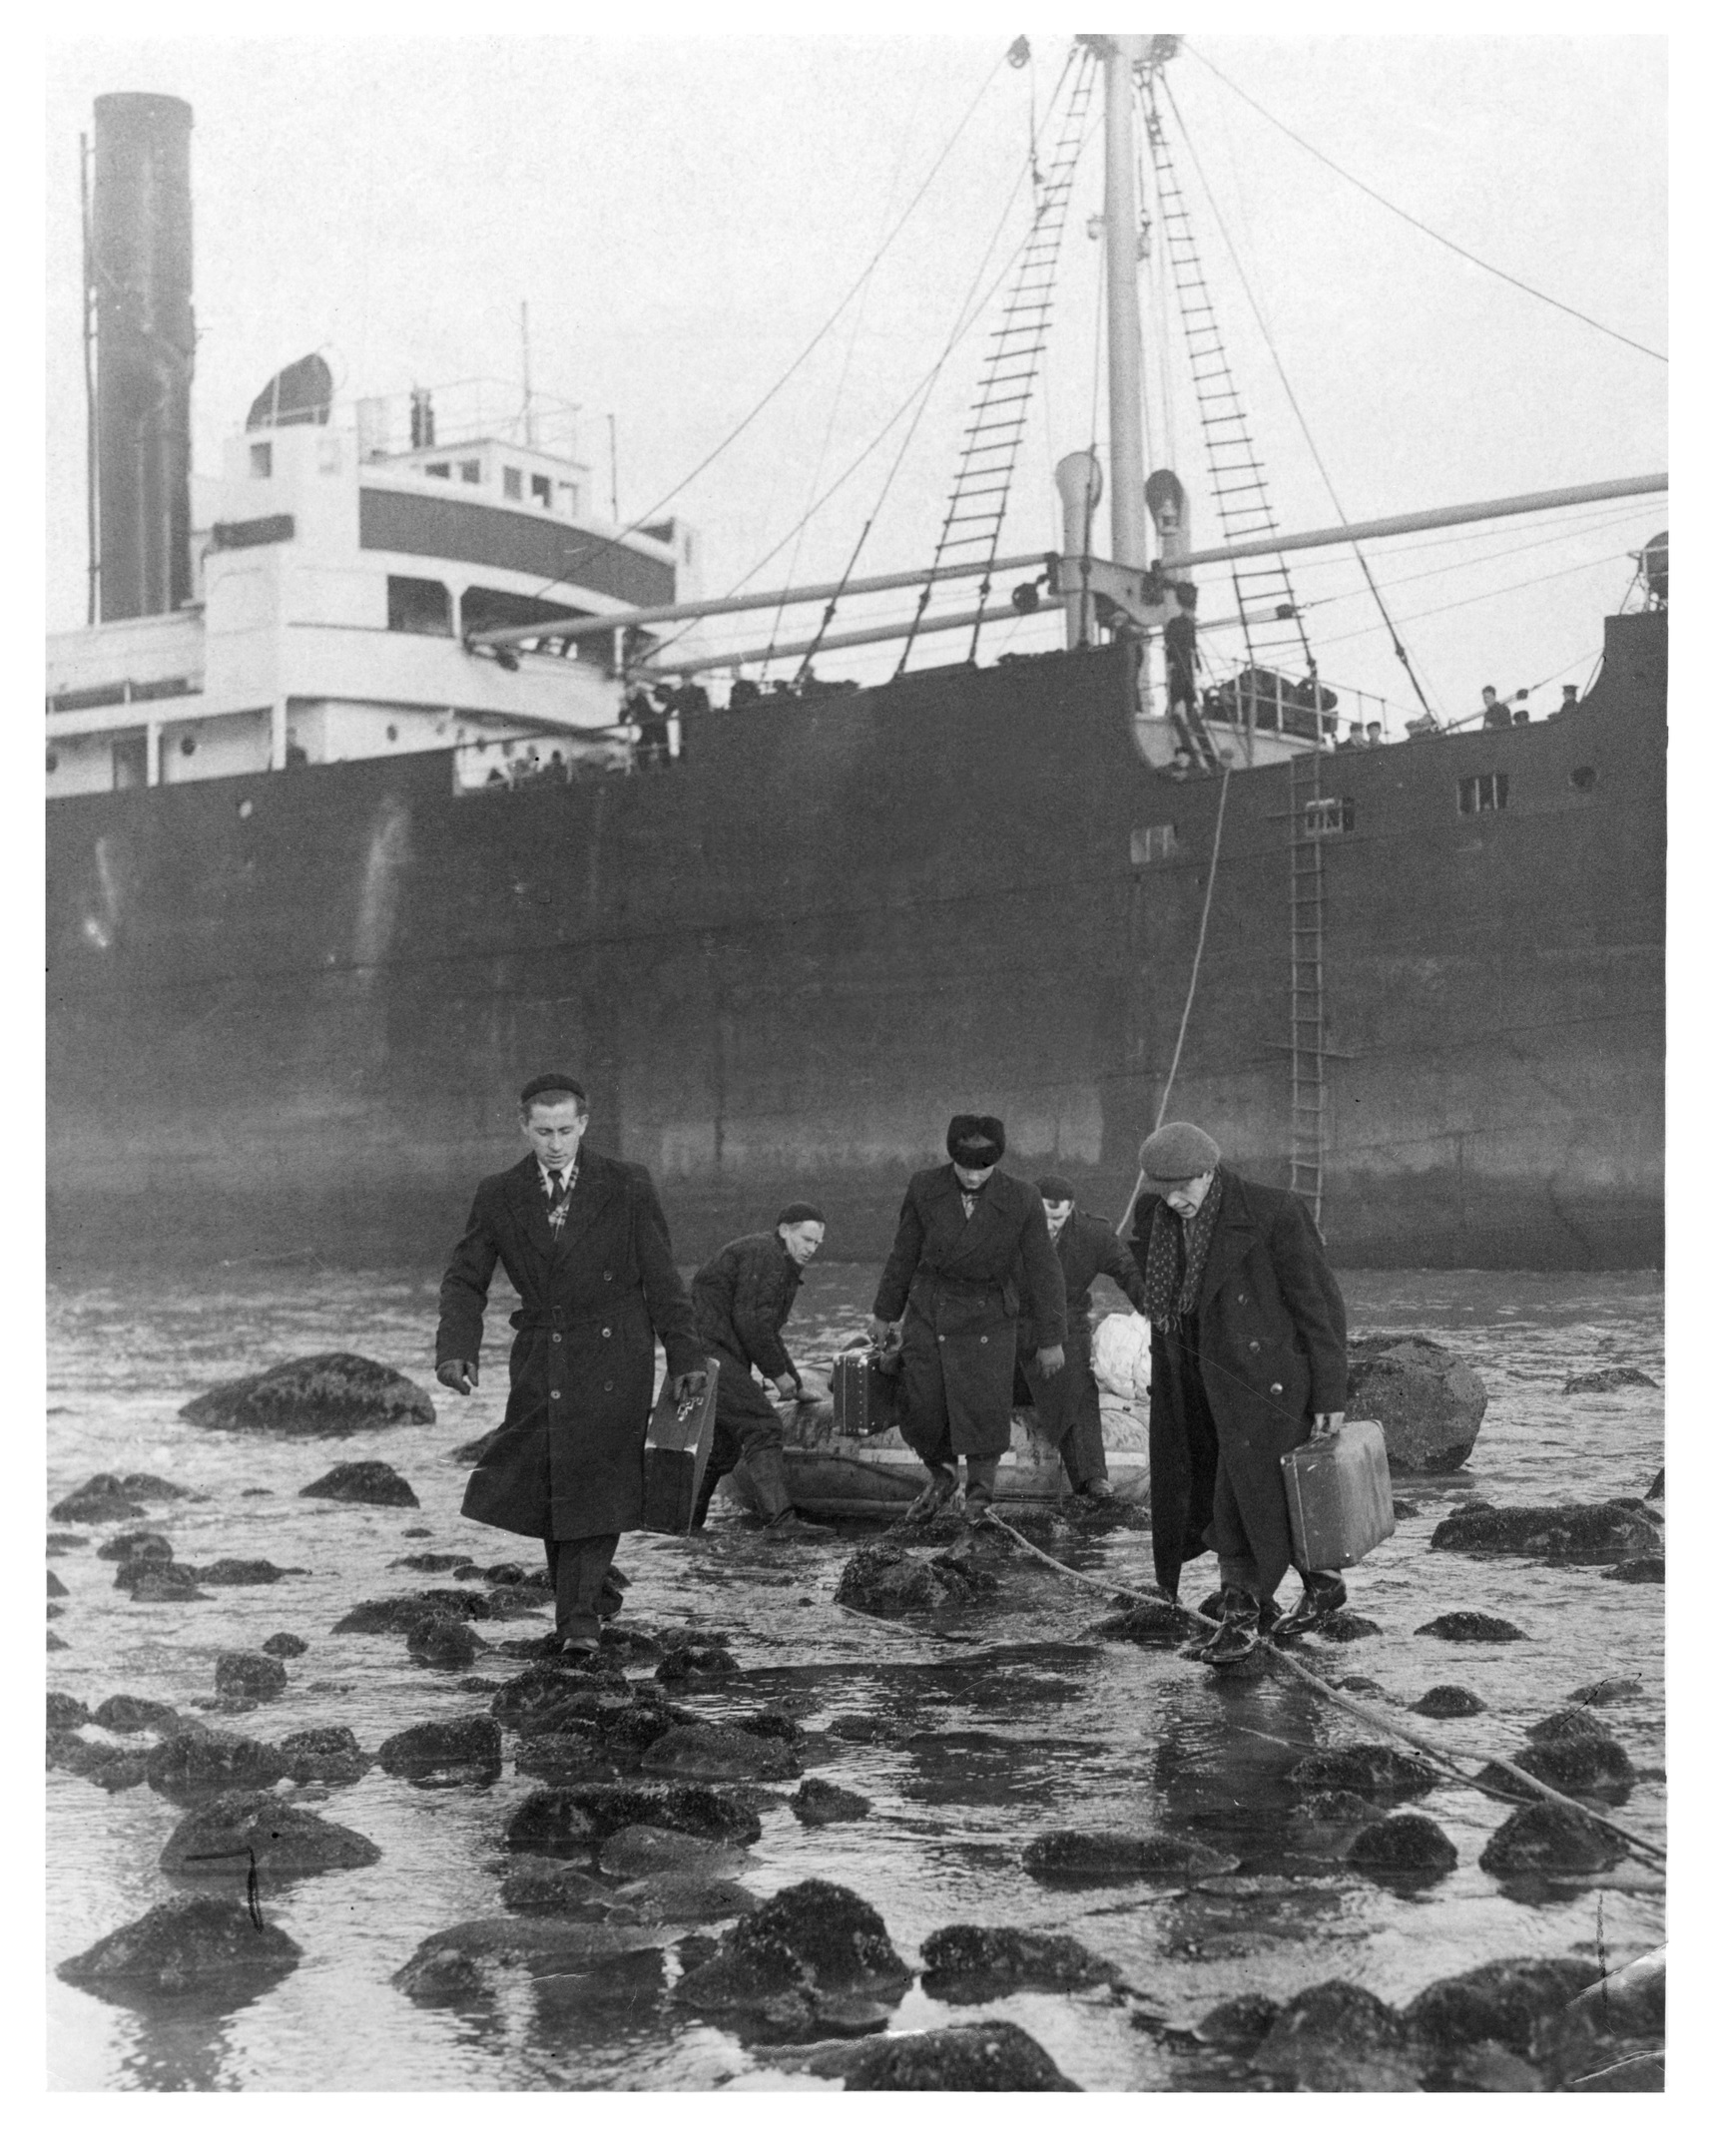 The crew of the grounded Russian steamer Krymov step from their rescue dinghy on to the beach at Murcar.